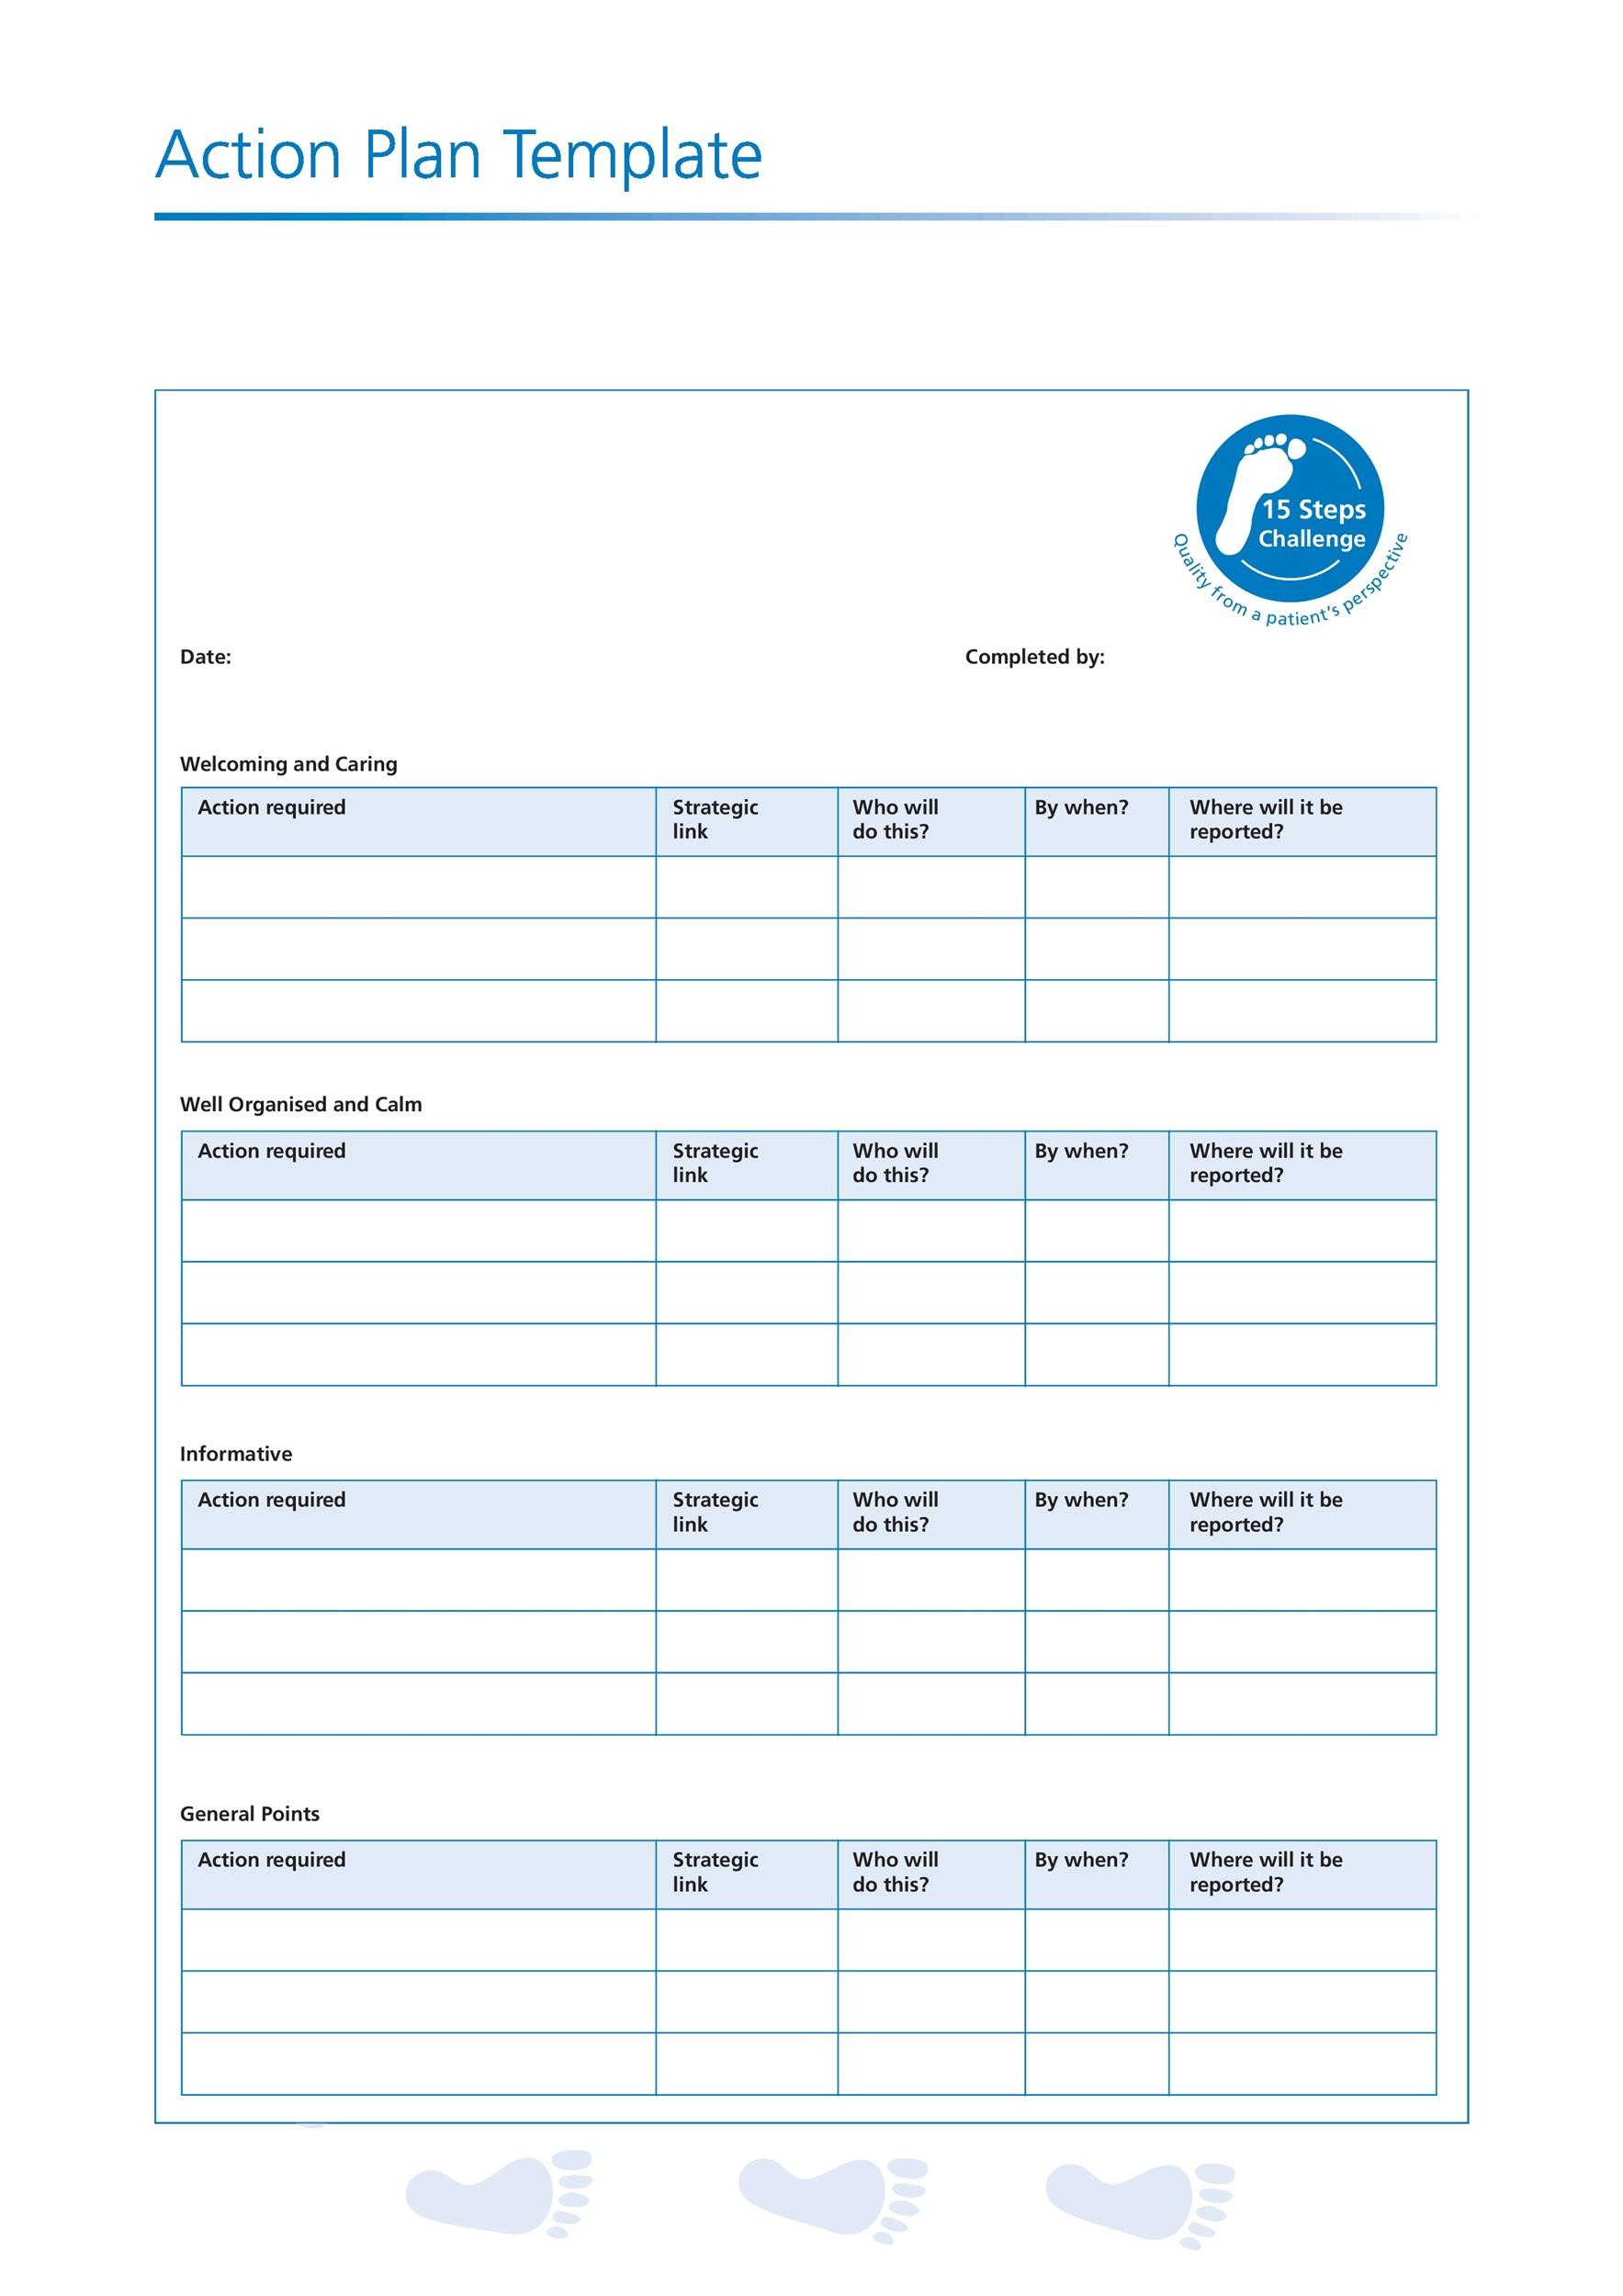 Action Plan Templates  Free Action Plan Templates